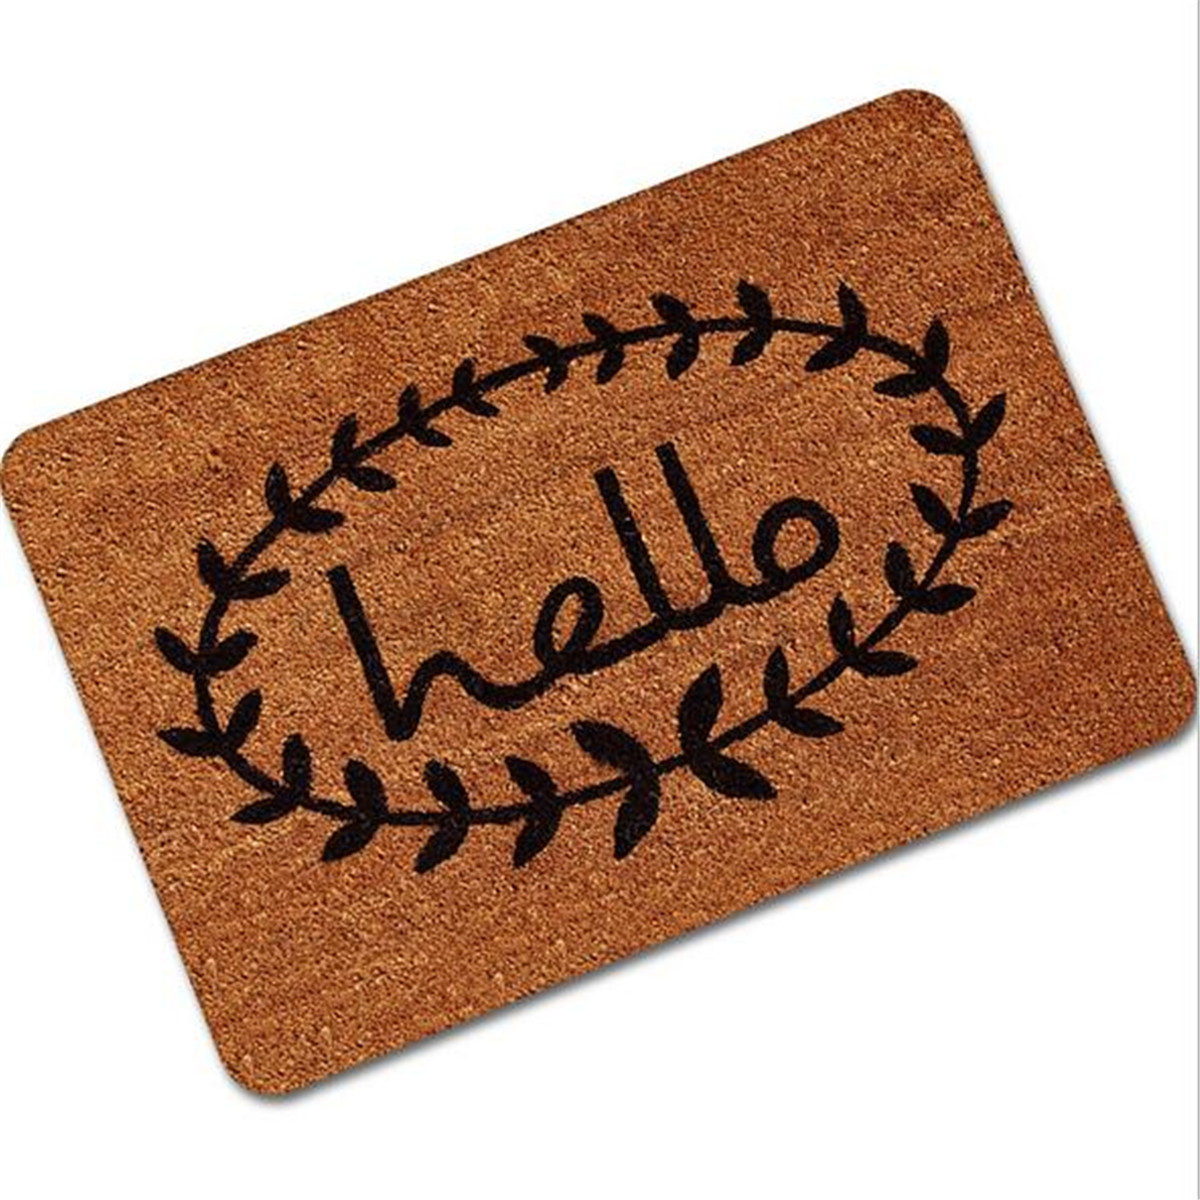 Letter Funny Welcome Home Entrance Floor Rug Non-slip Doormat ...